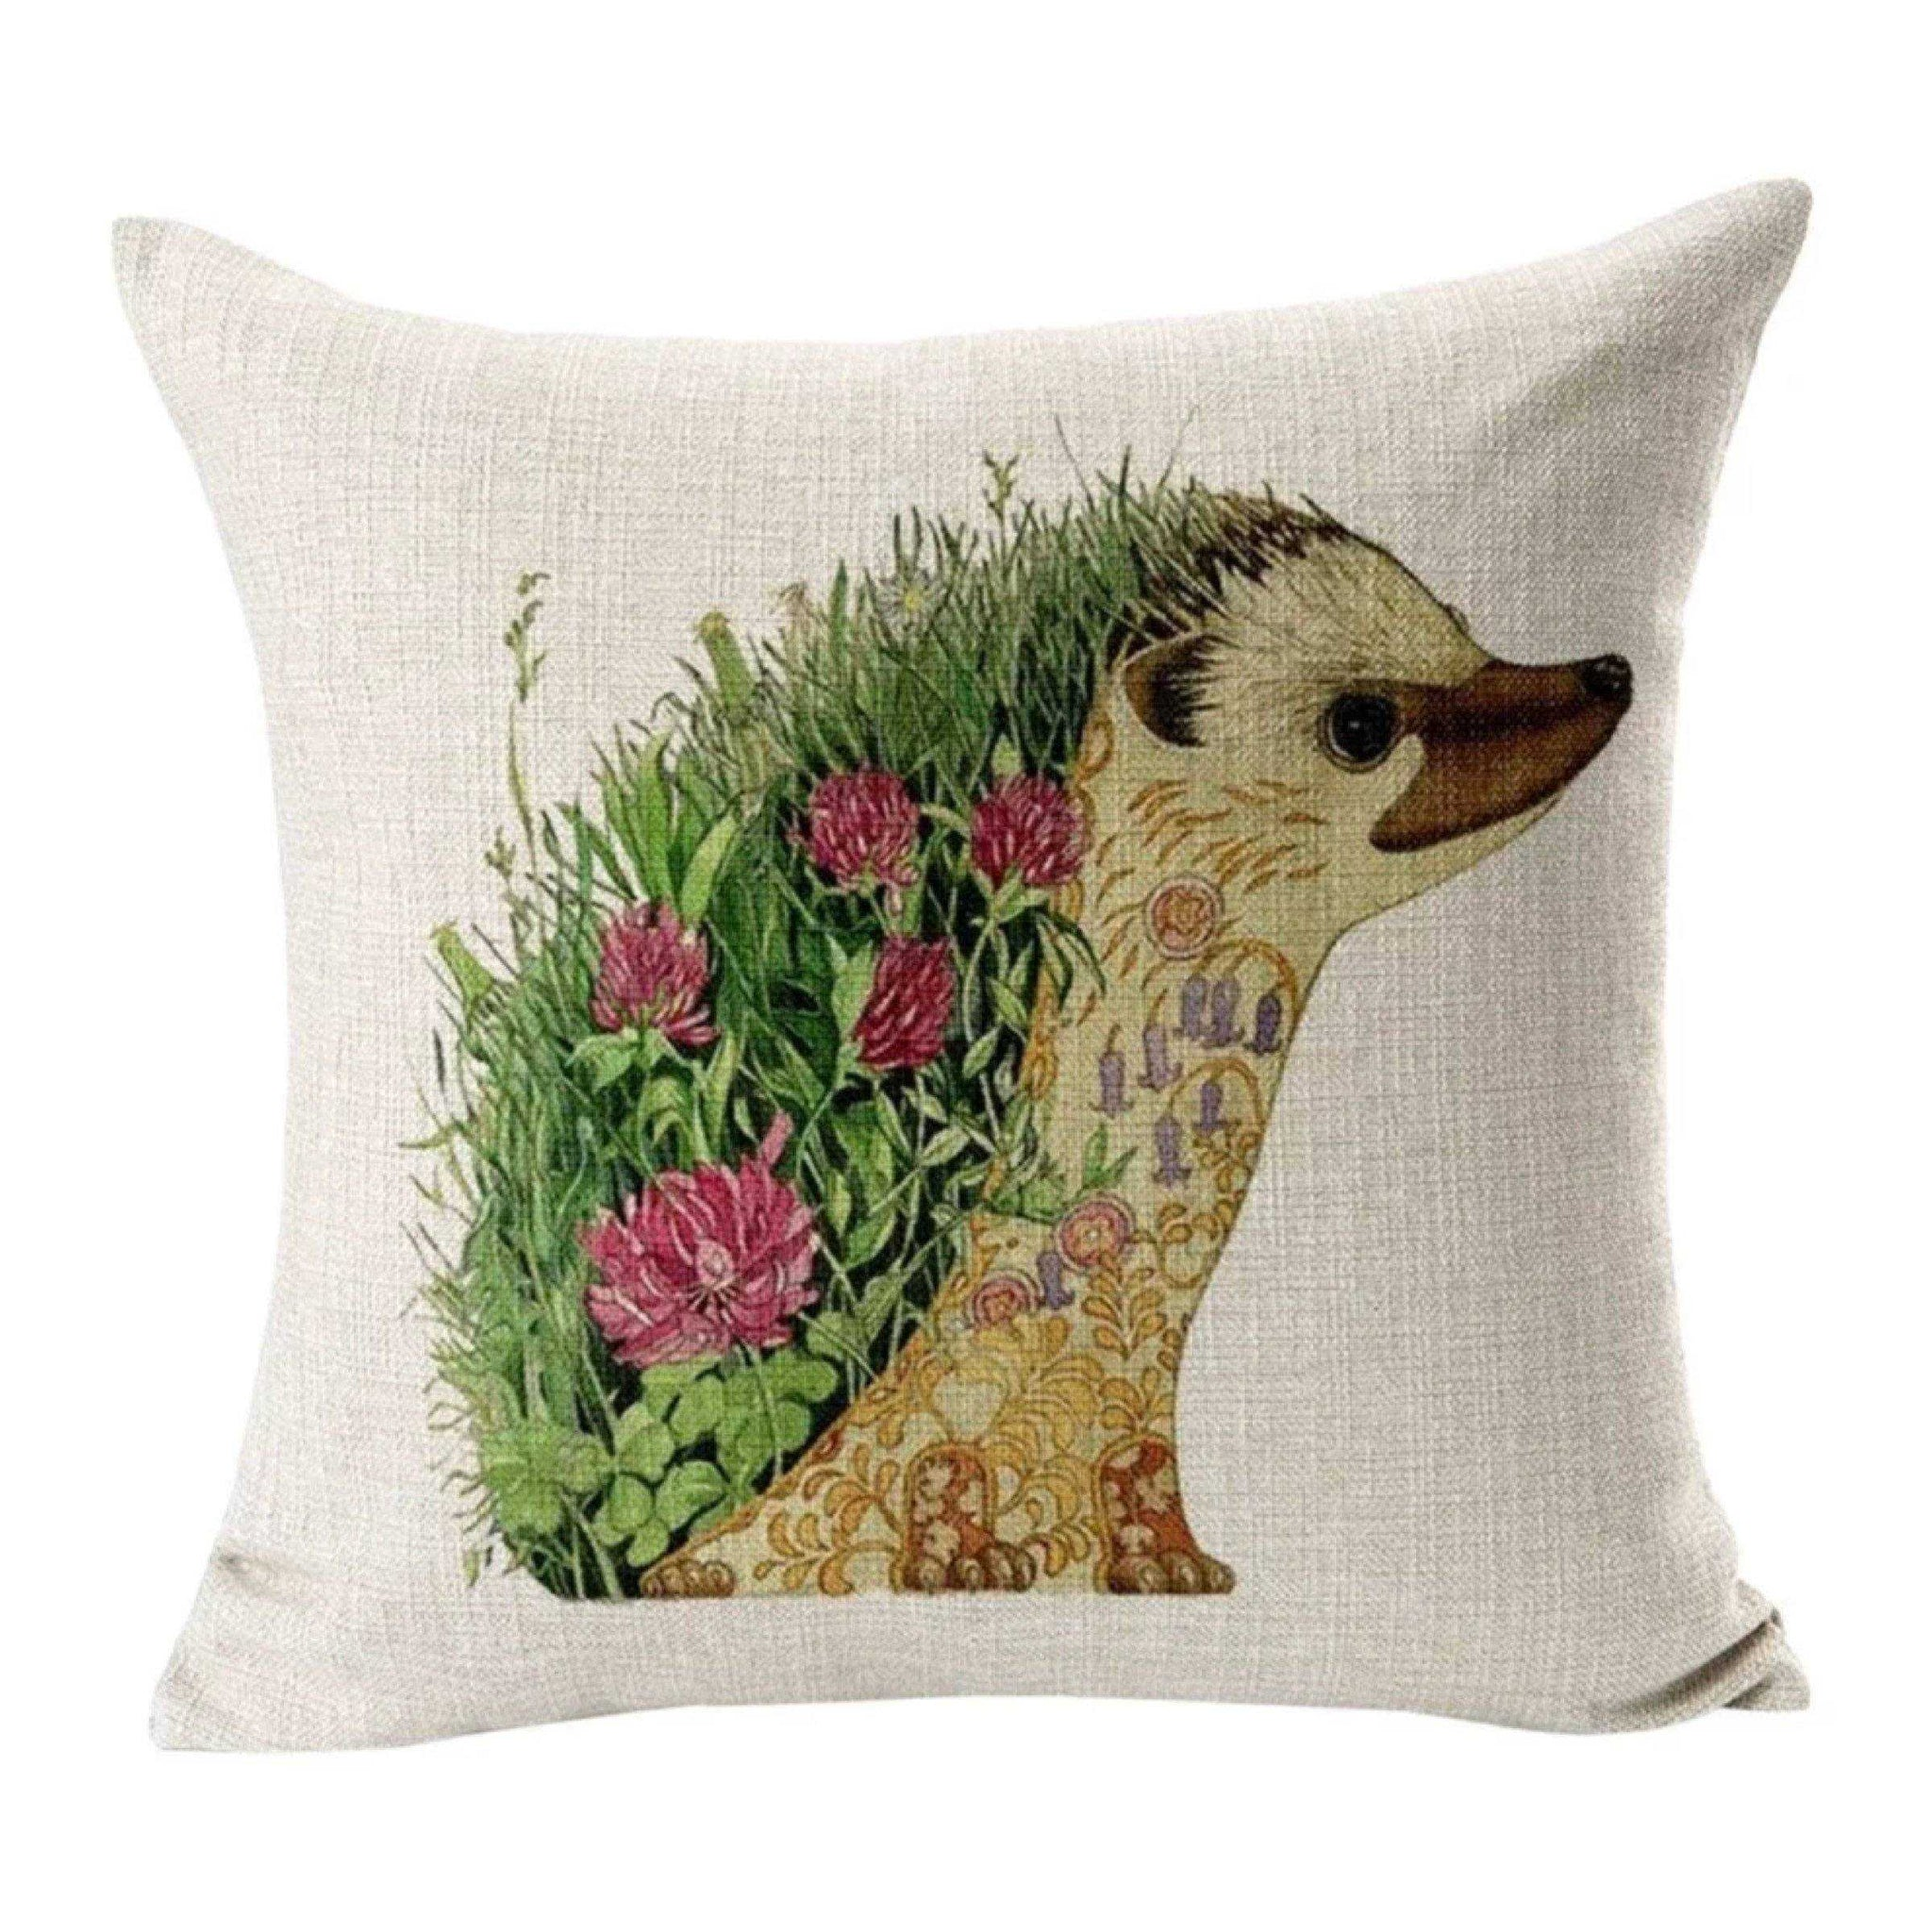 Cushion Pillow Cute Hedgehog with Pink Flowers - The Renmy Store